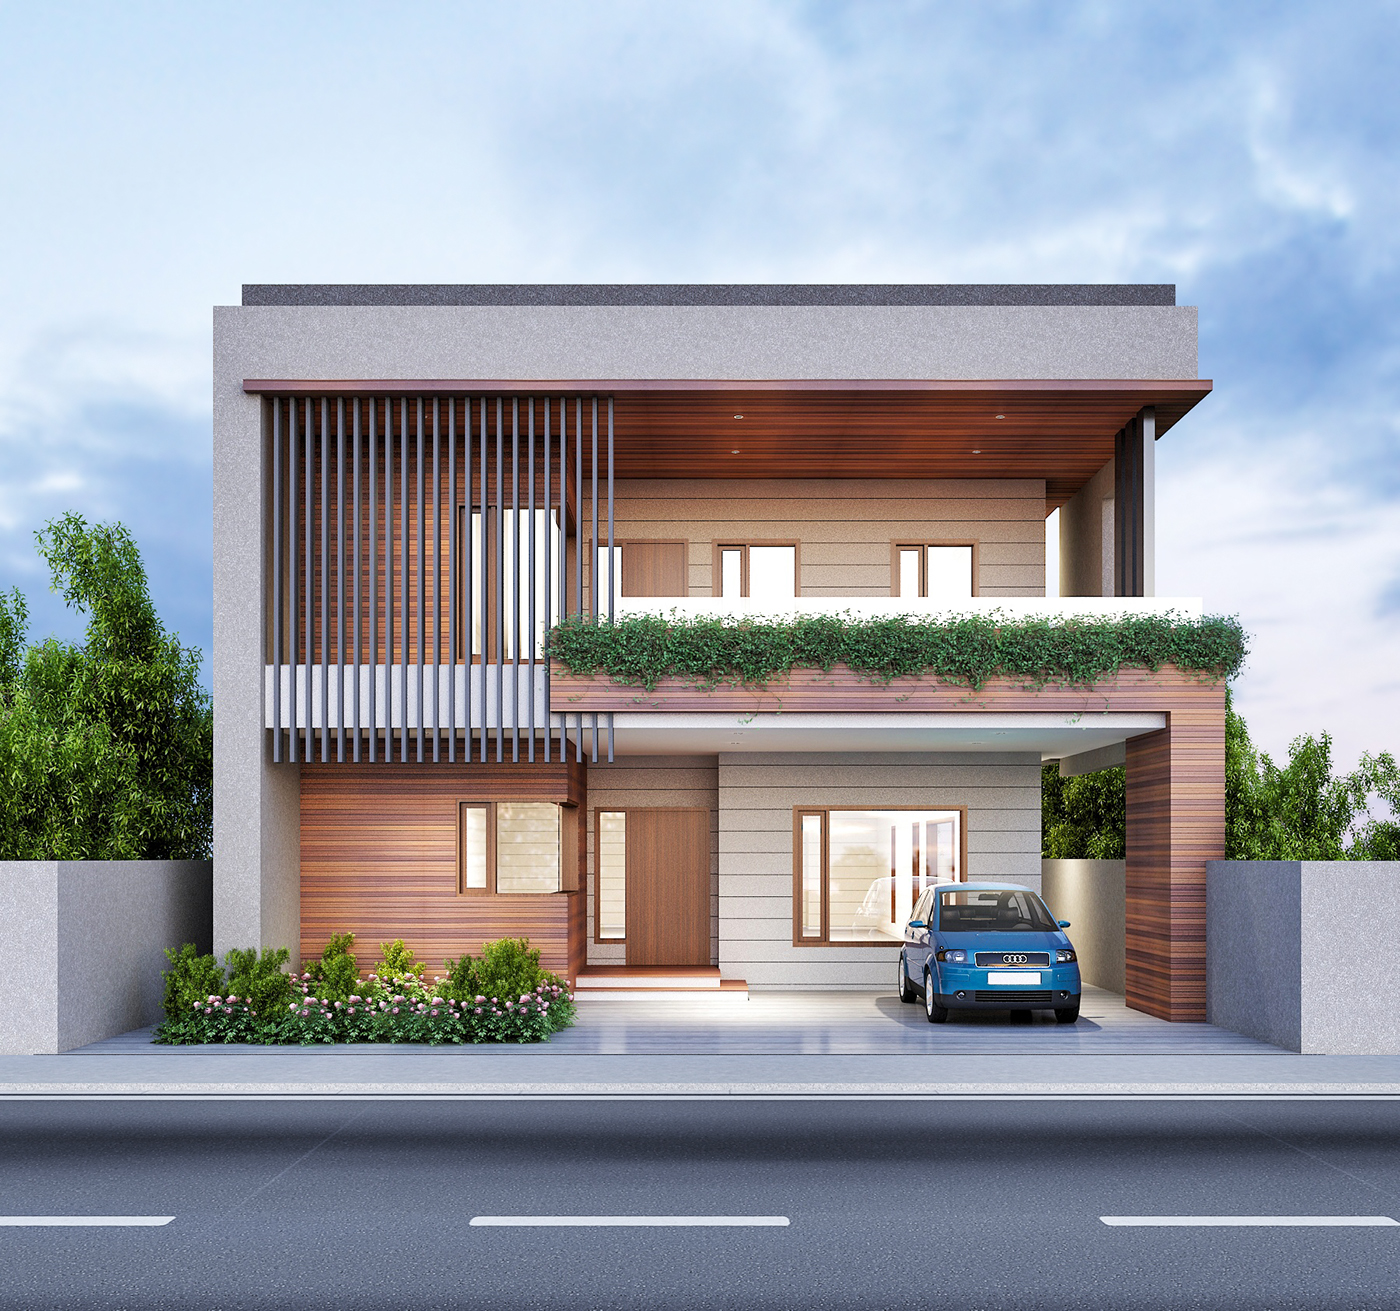 Renders exterior on behance for Arch design indian home plans